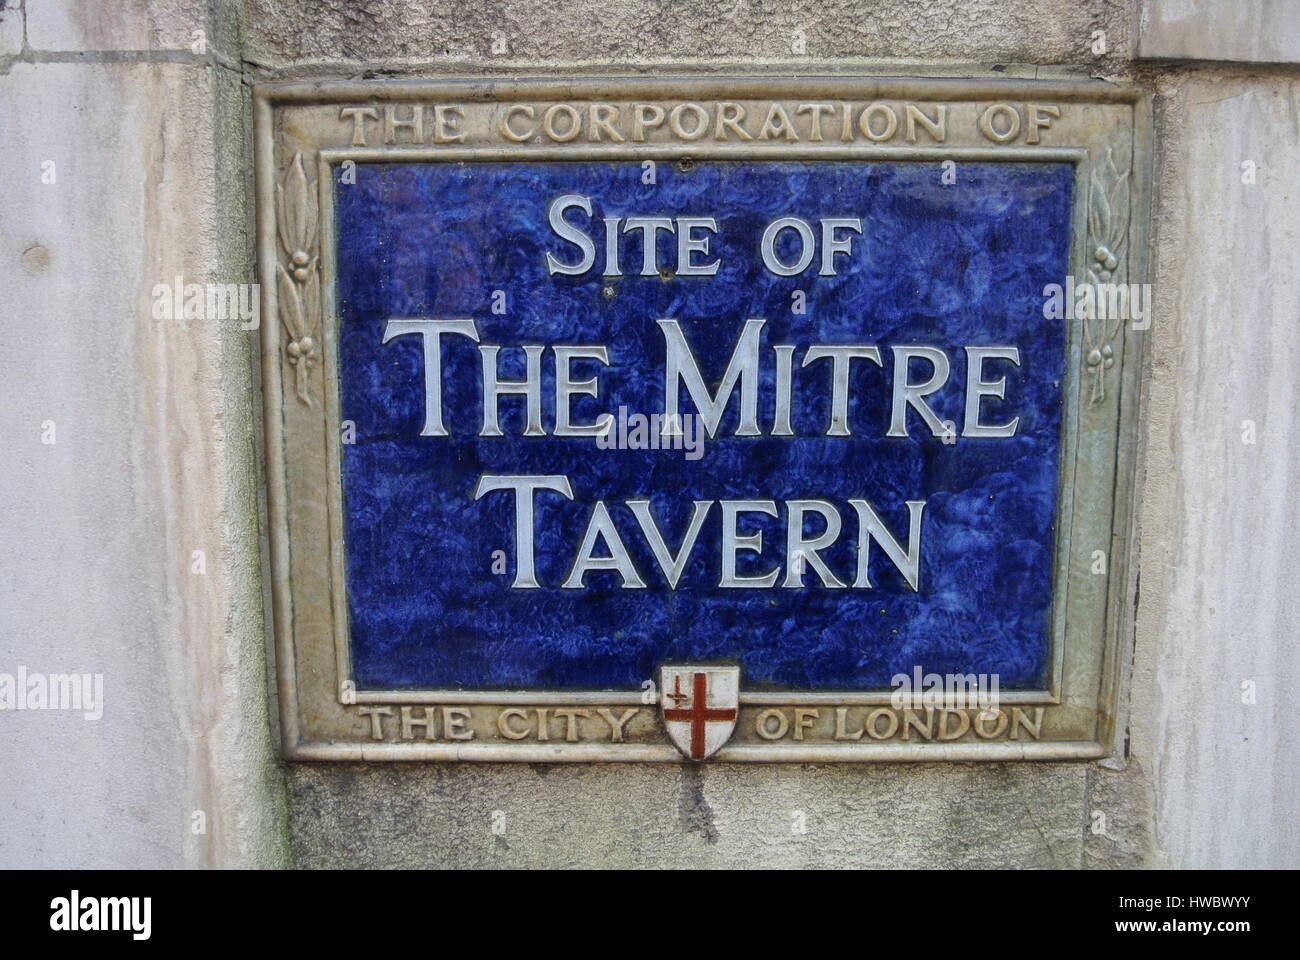 Blue Plaque Site of The Mitre Tavern, City of London, England, United Kingdom - Stock Image